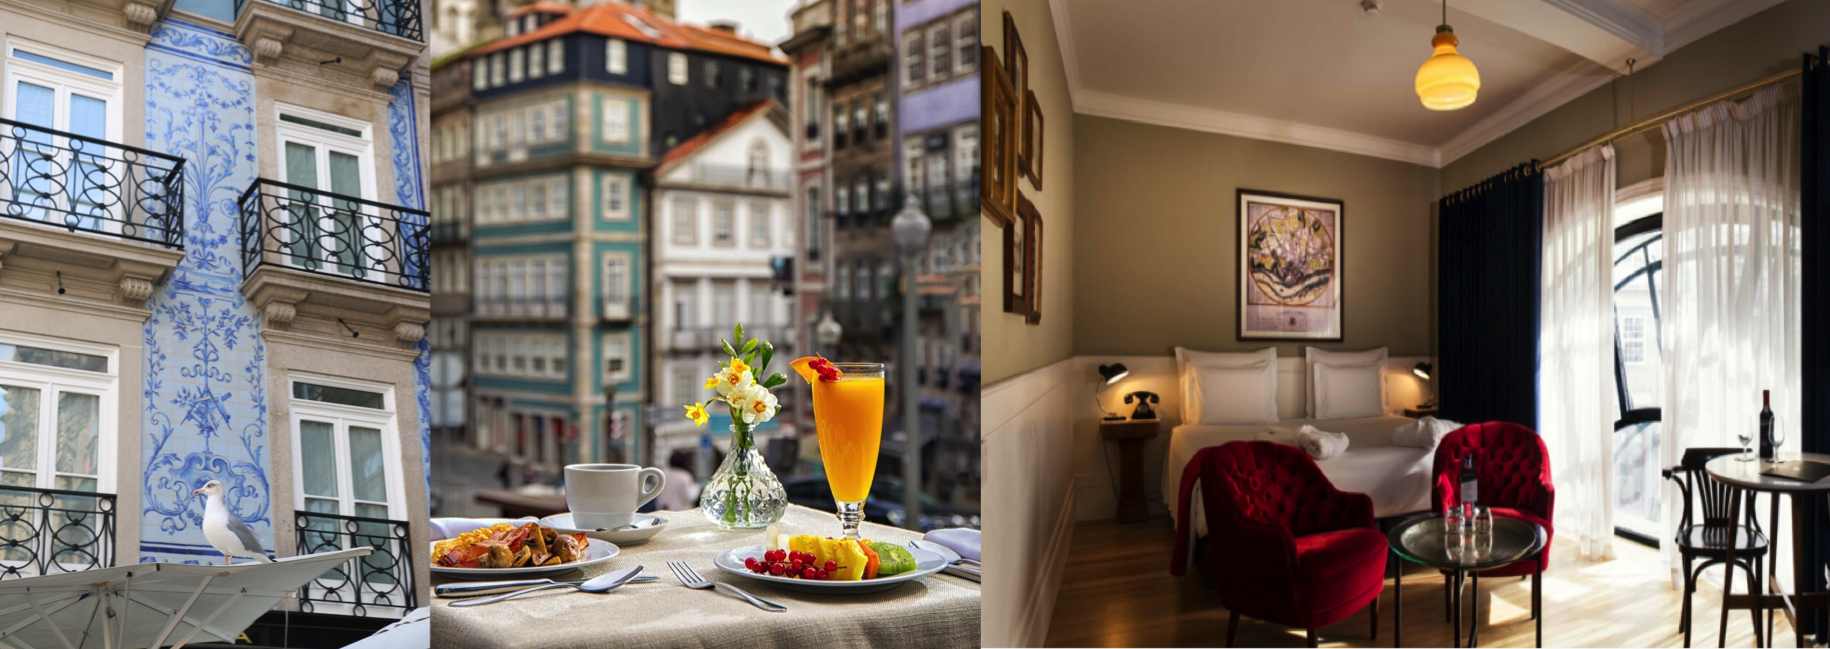 LIFESTYLE VACATIONS PORTUGAL LUXURY TOUR IN PORTO & THE DOURO VALLEY